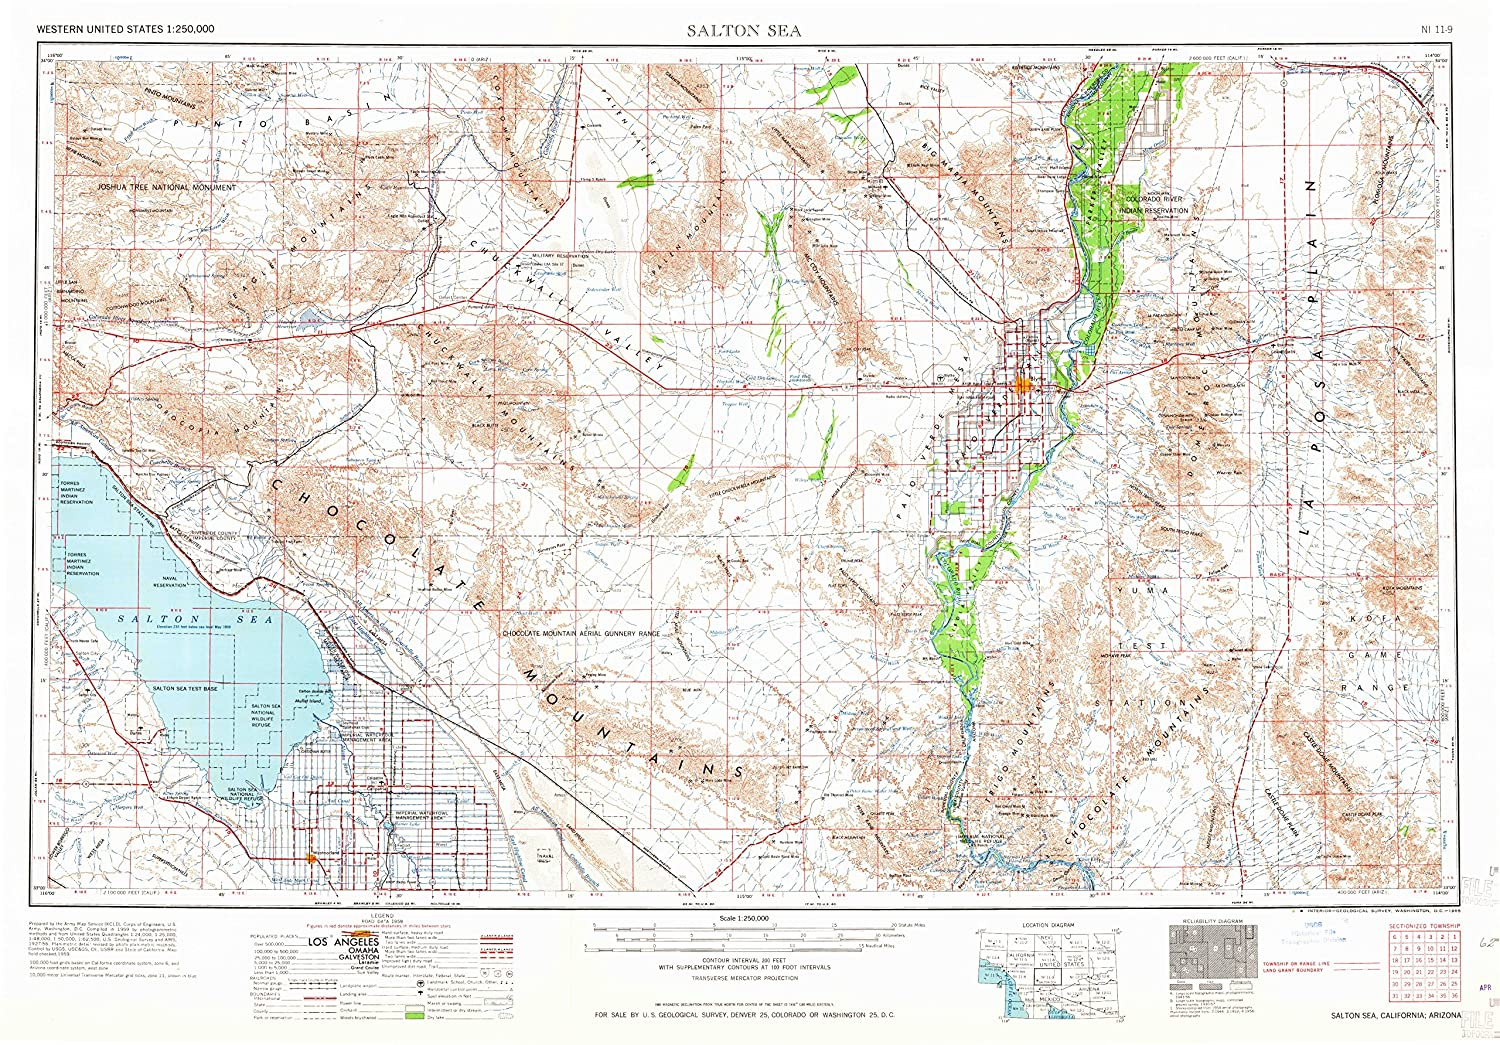 Amazoncom Salton Sea CA Topo Map Scale X Degree - Salton sea on us map